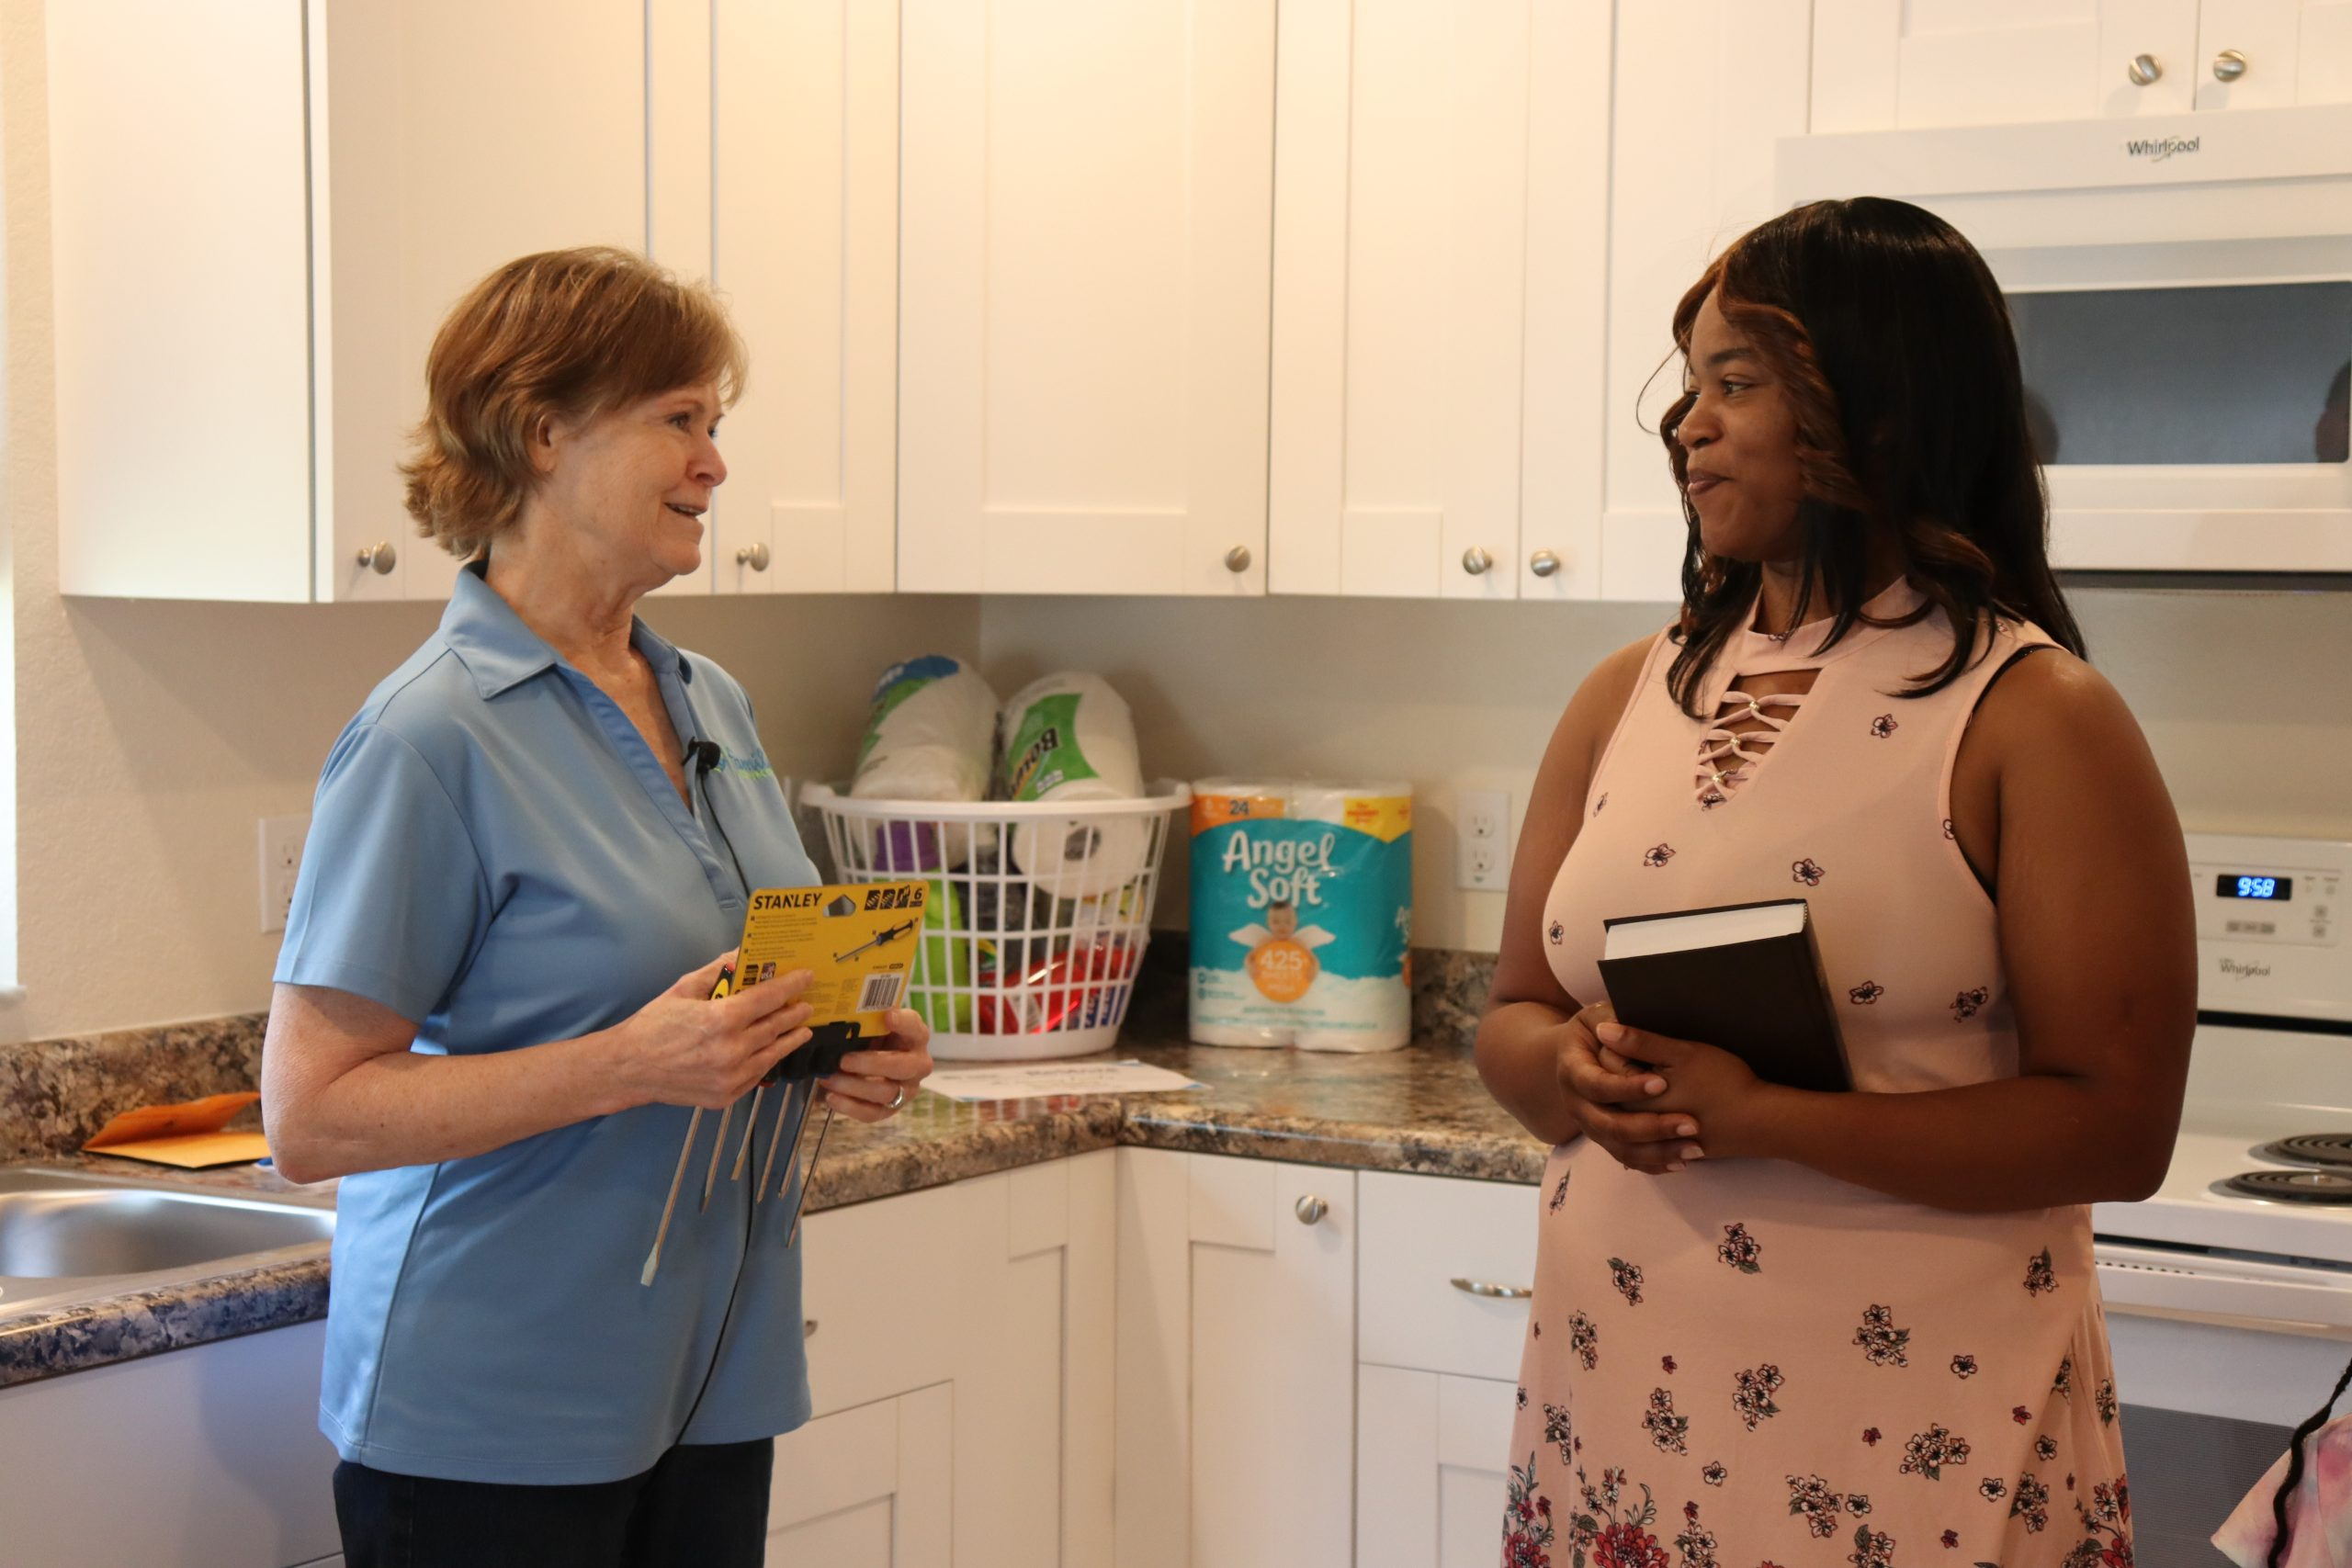 Pandemic doesn't stop Habitat for Humanity from building hope for families